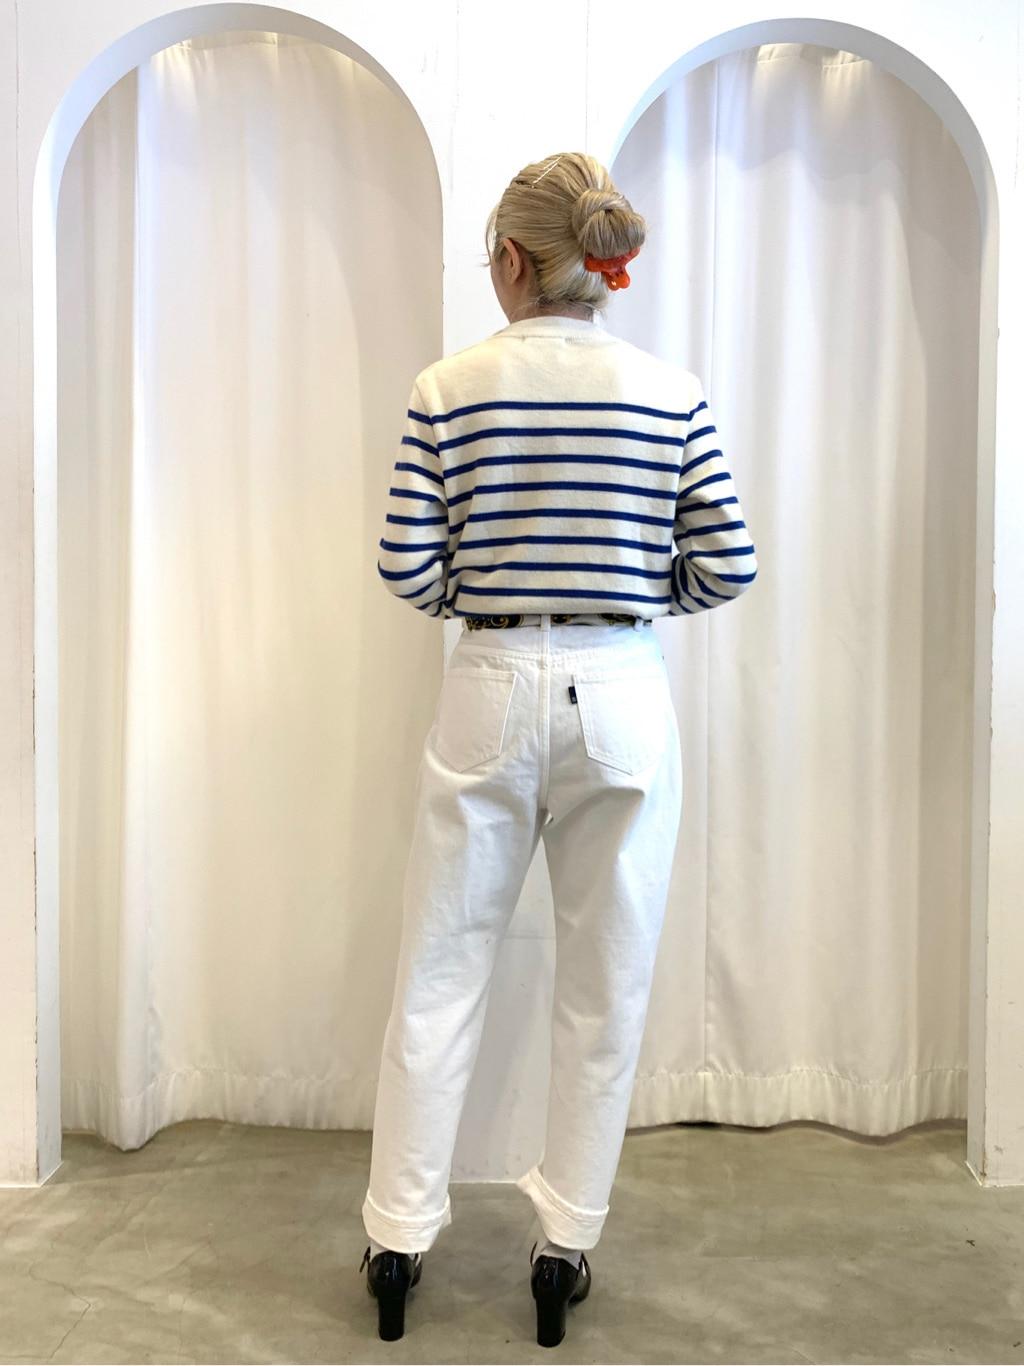 Dot and Stripes CHILD WOMAN ラフォーレ原宿 身長:160cm 2021.01.22